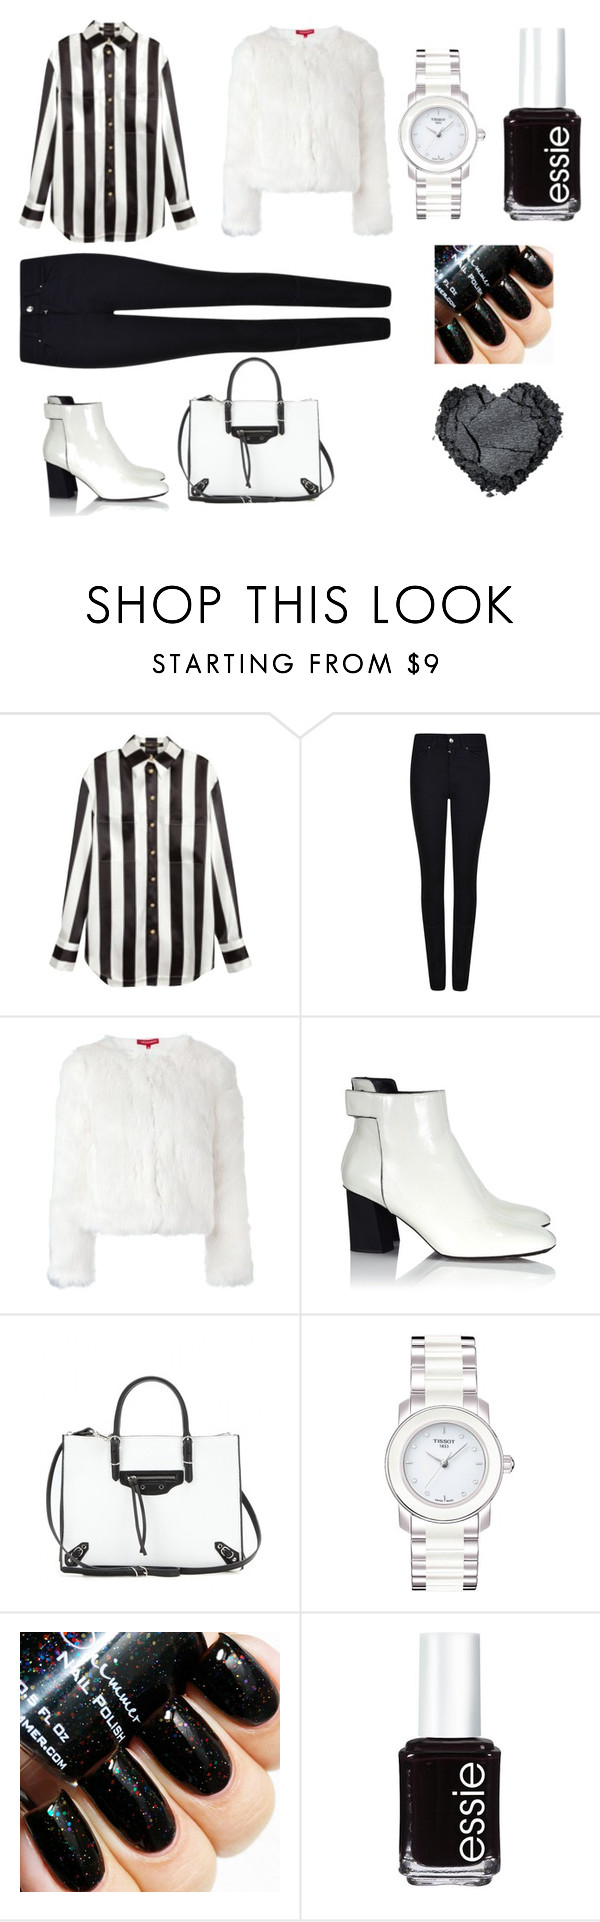 """""""Untitled #60"""" by laimabakhtani ❤ liked on Polyvore featuring Balmain, Giorgio Armani, n:PHILANTHROPY, Proenza Schouler, Balenciaga, Tissot and Essie"""